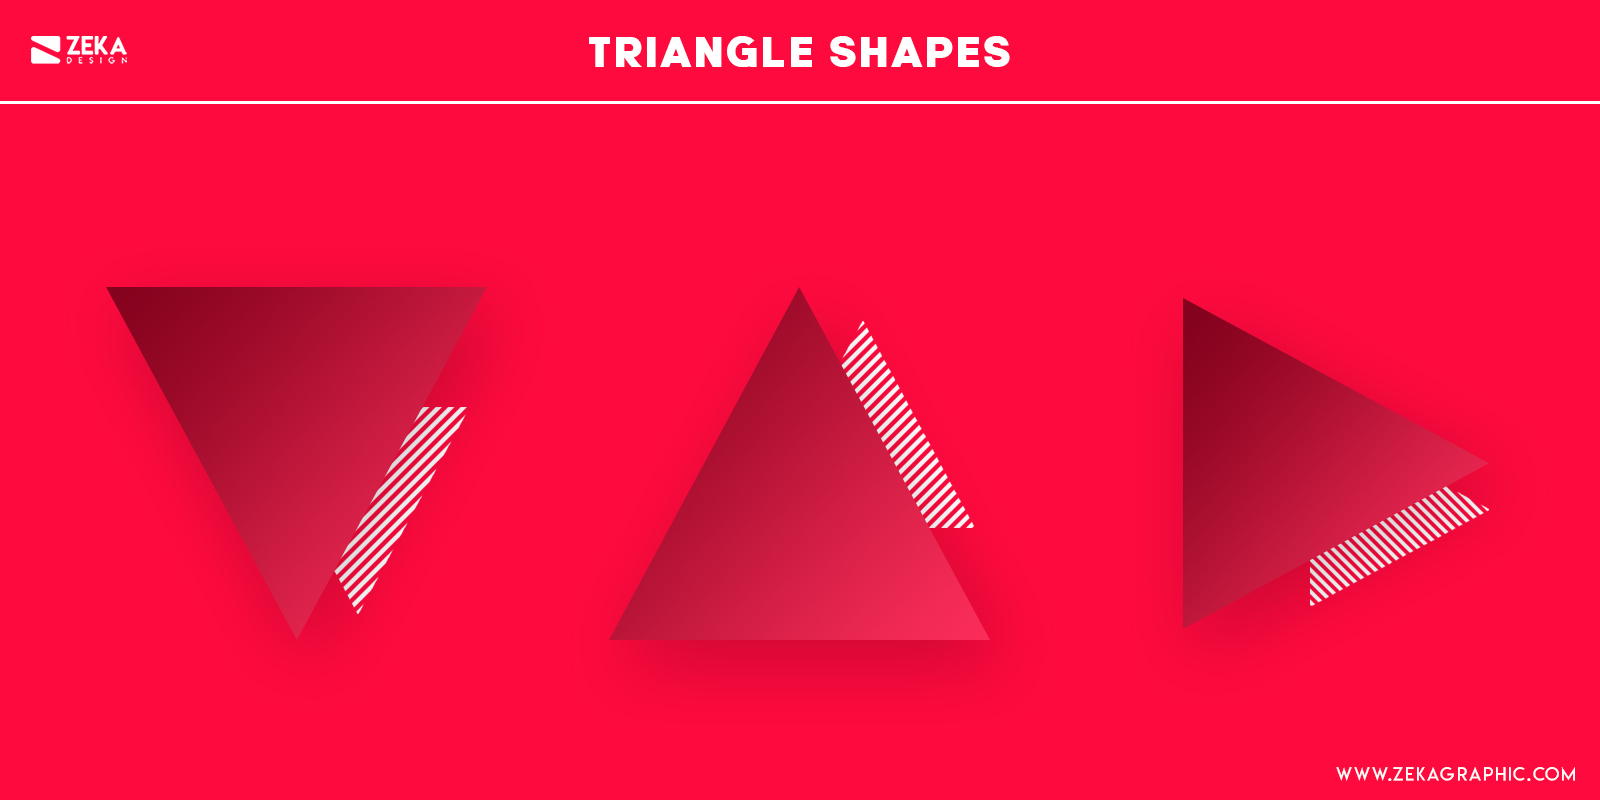 Triangle Shapes Psychology in Graphic Design